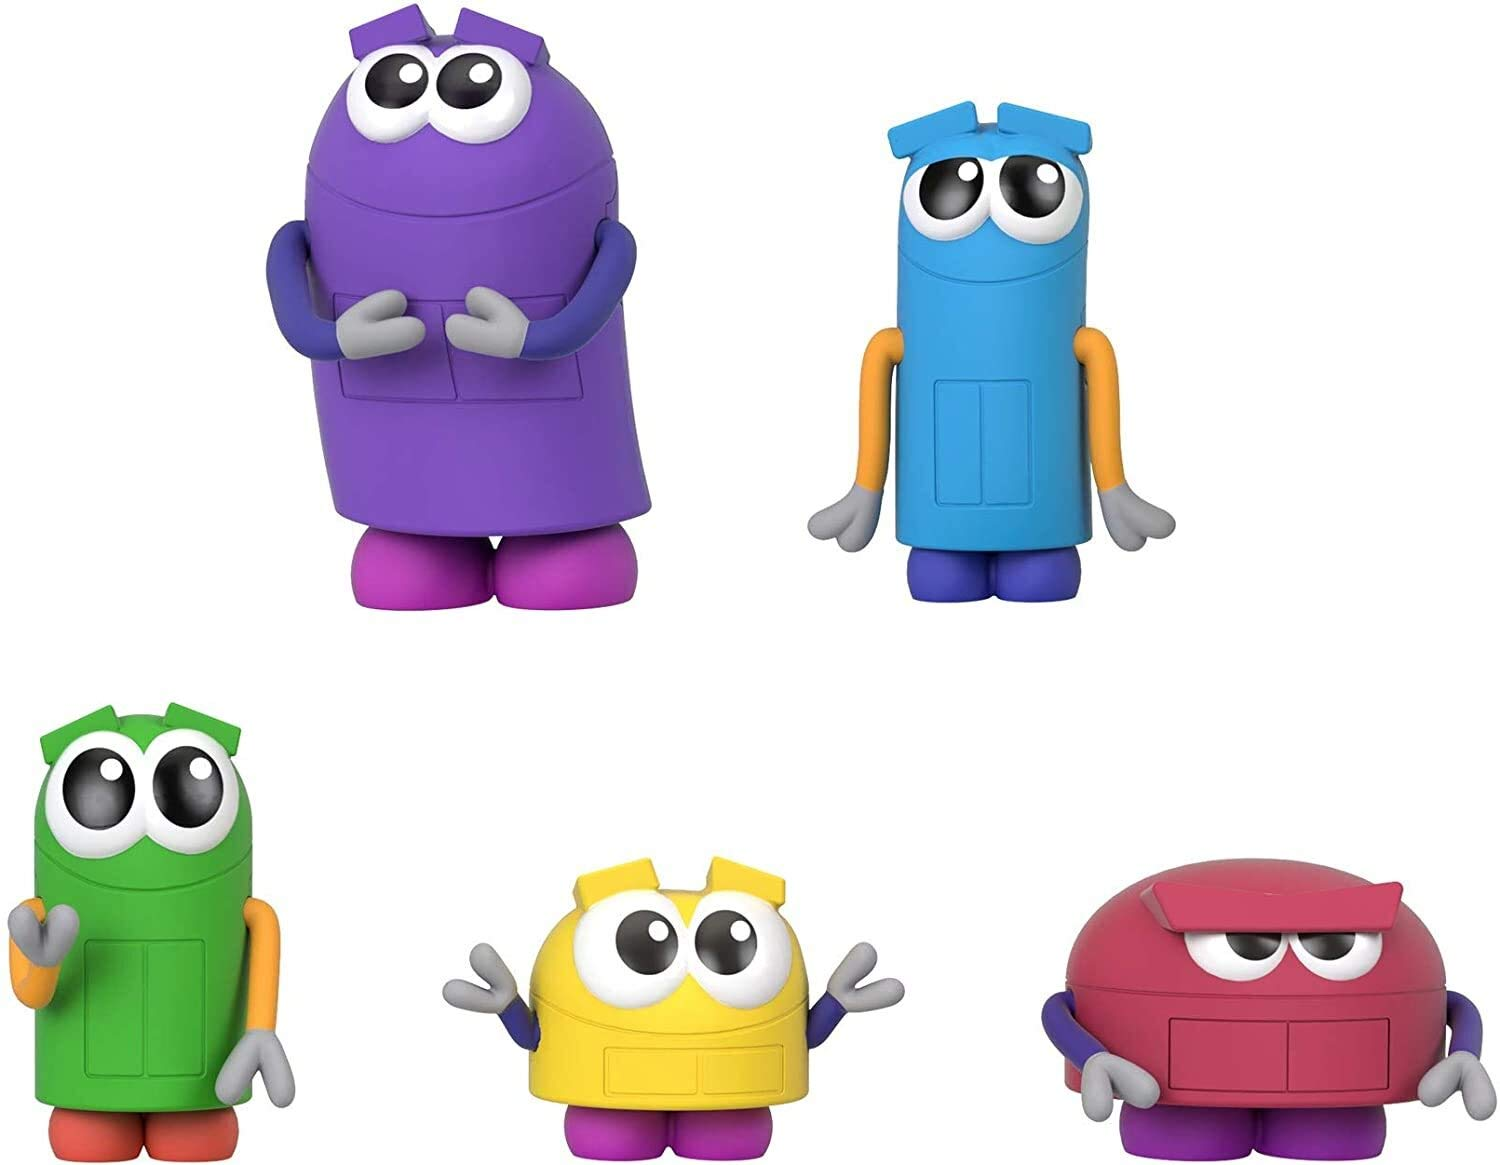 Fisher-Price StoryBots Figure Pack, set of 5 figures featuring characters from the Netflix series for preschool kids ages 3 years and older